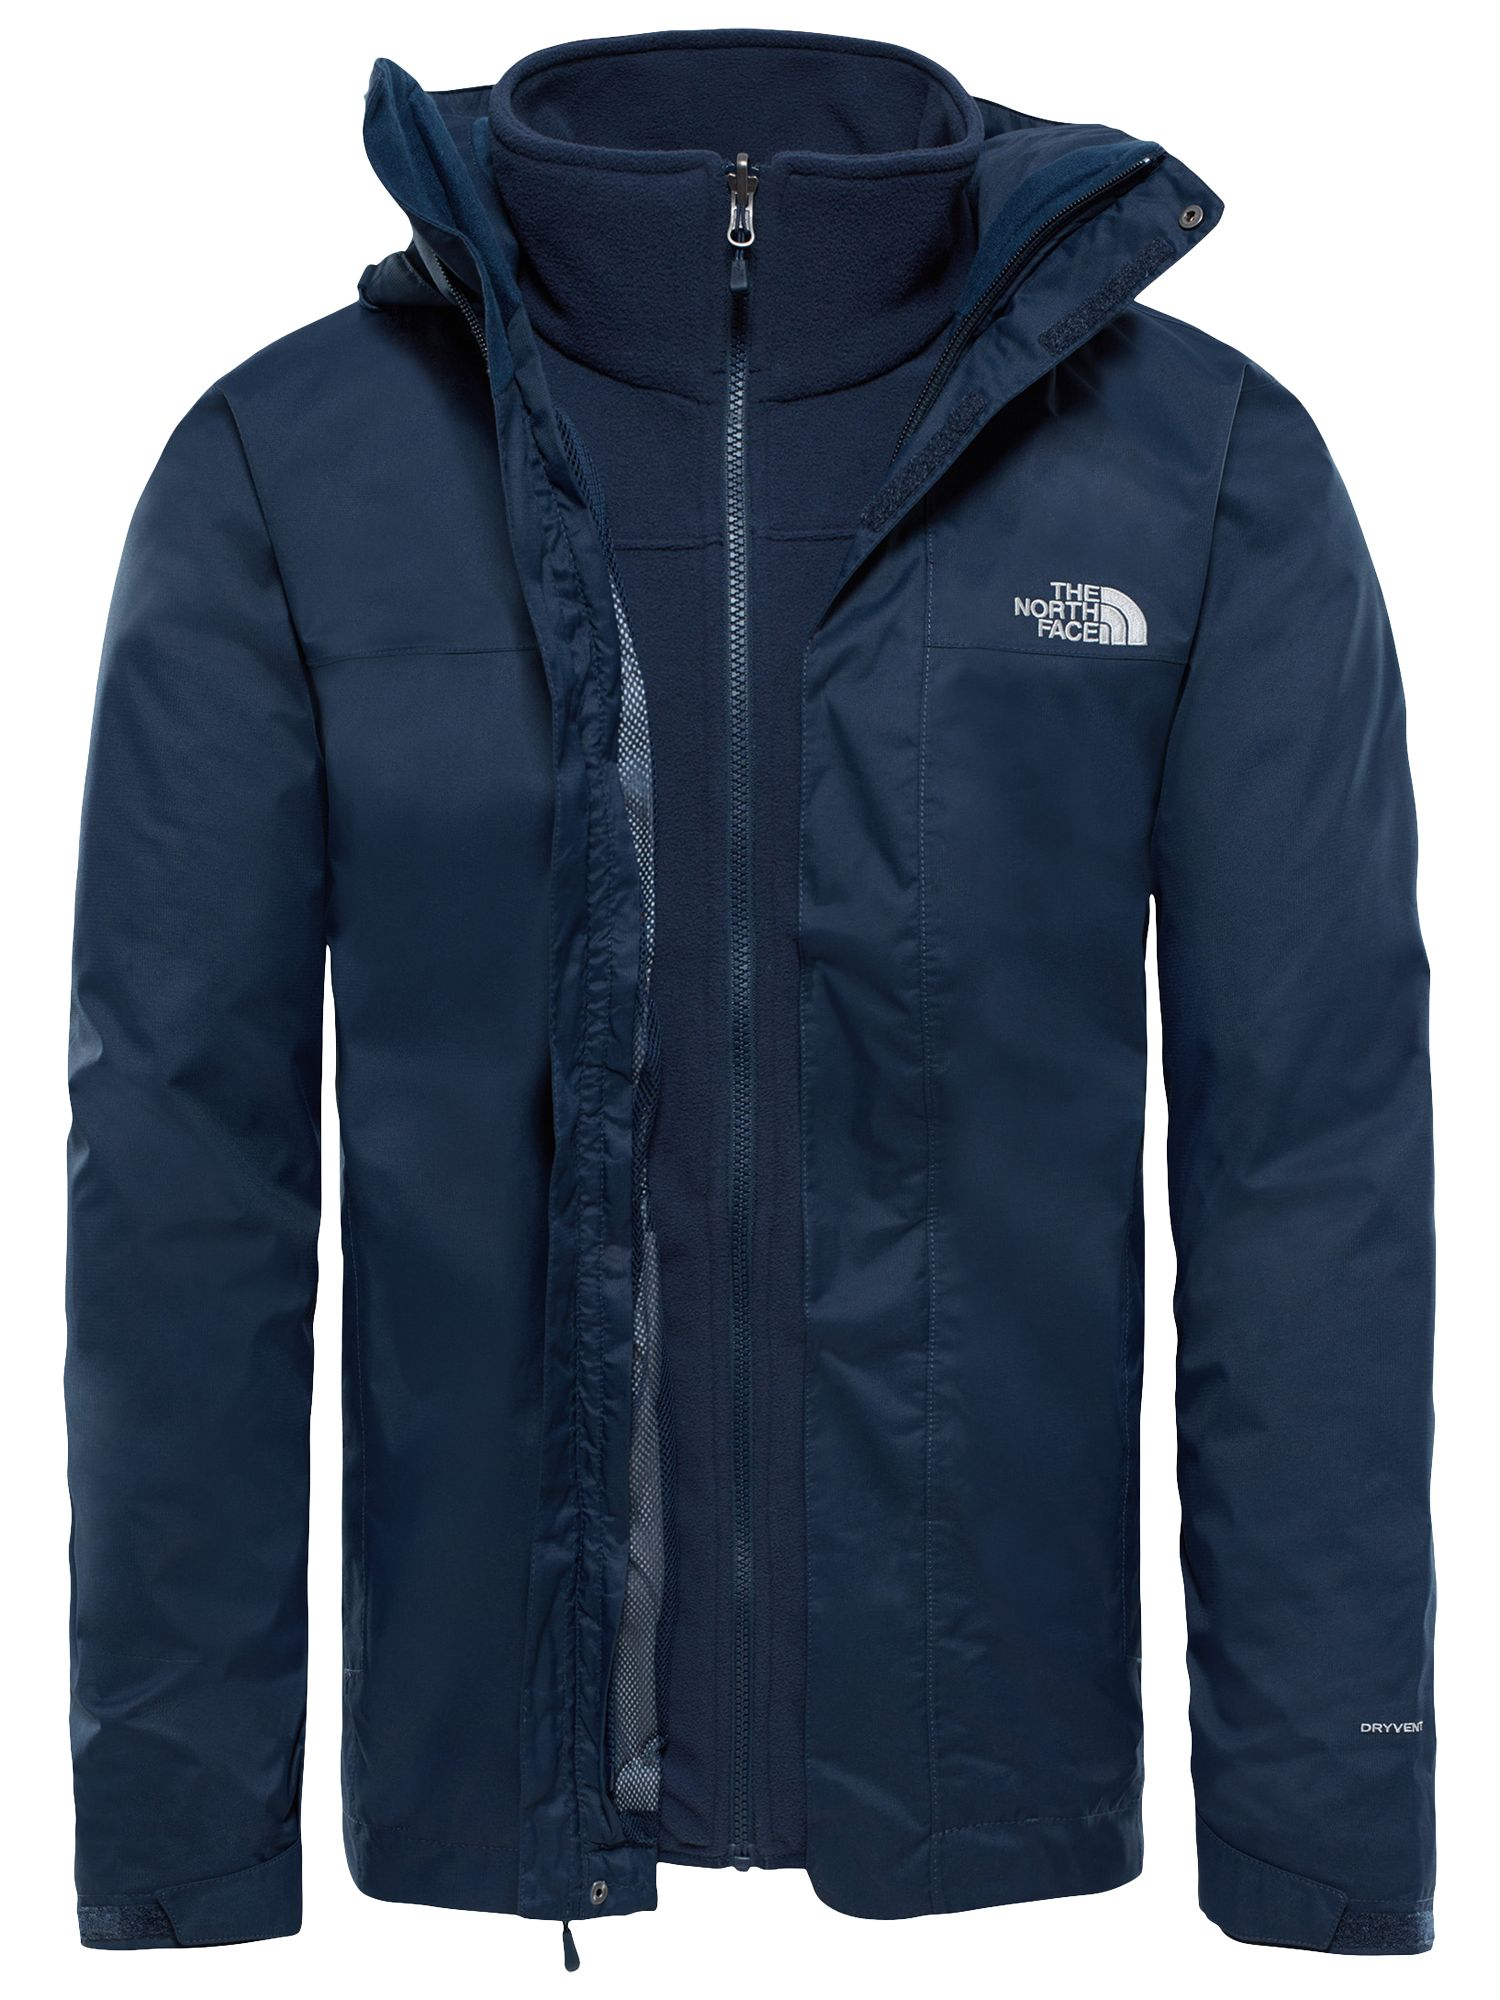 The North Face The North Face Evolve II Triclimate 3-in-1 Waterproof Men's Jacket